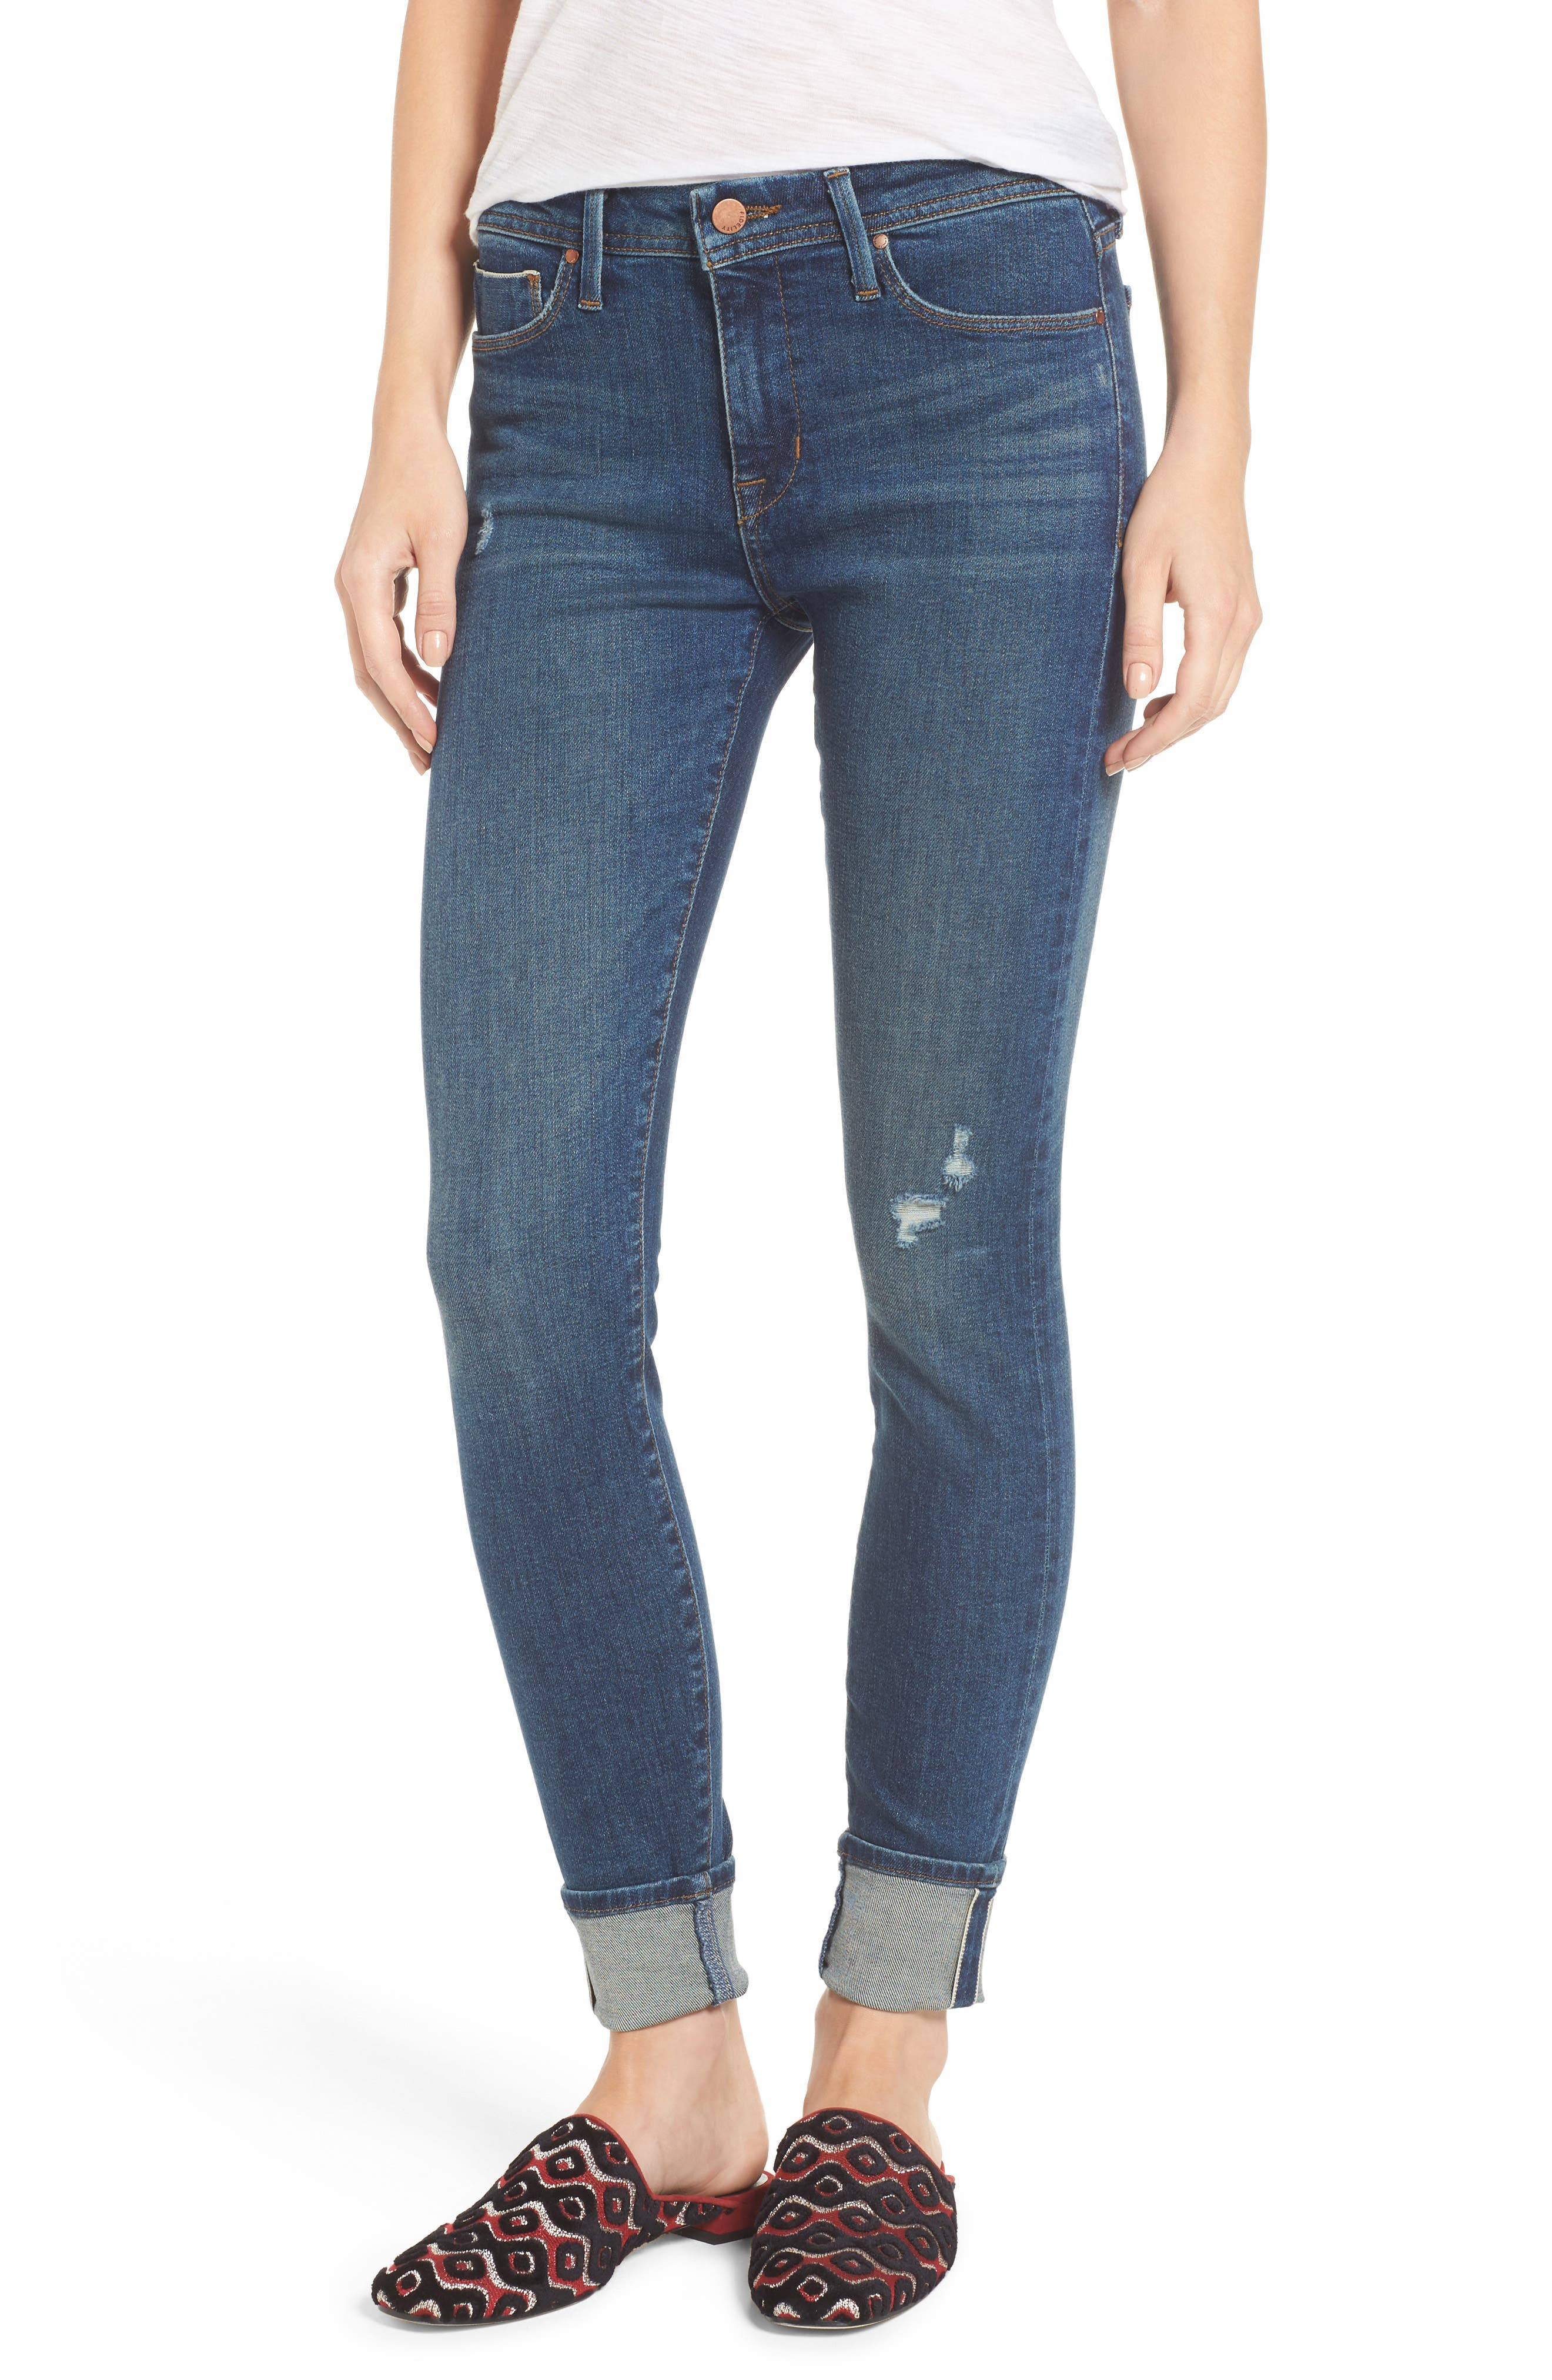 Belvedere Crop Skinny Jeans,                             Main thumbnail 1, color,                             8 Year Aged